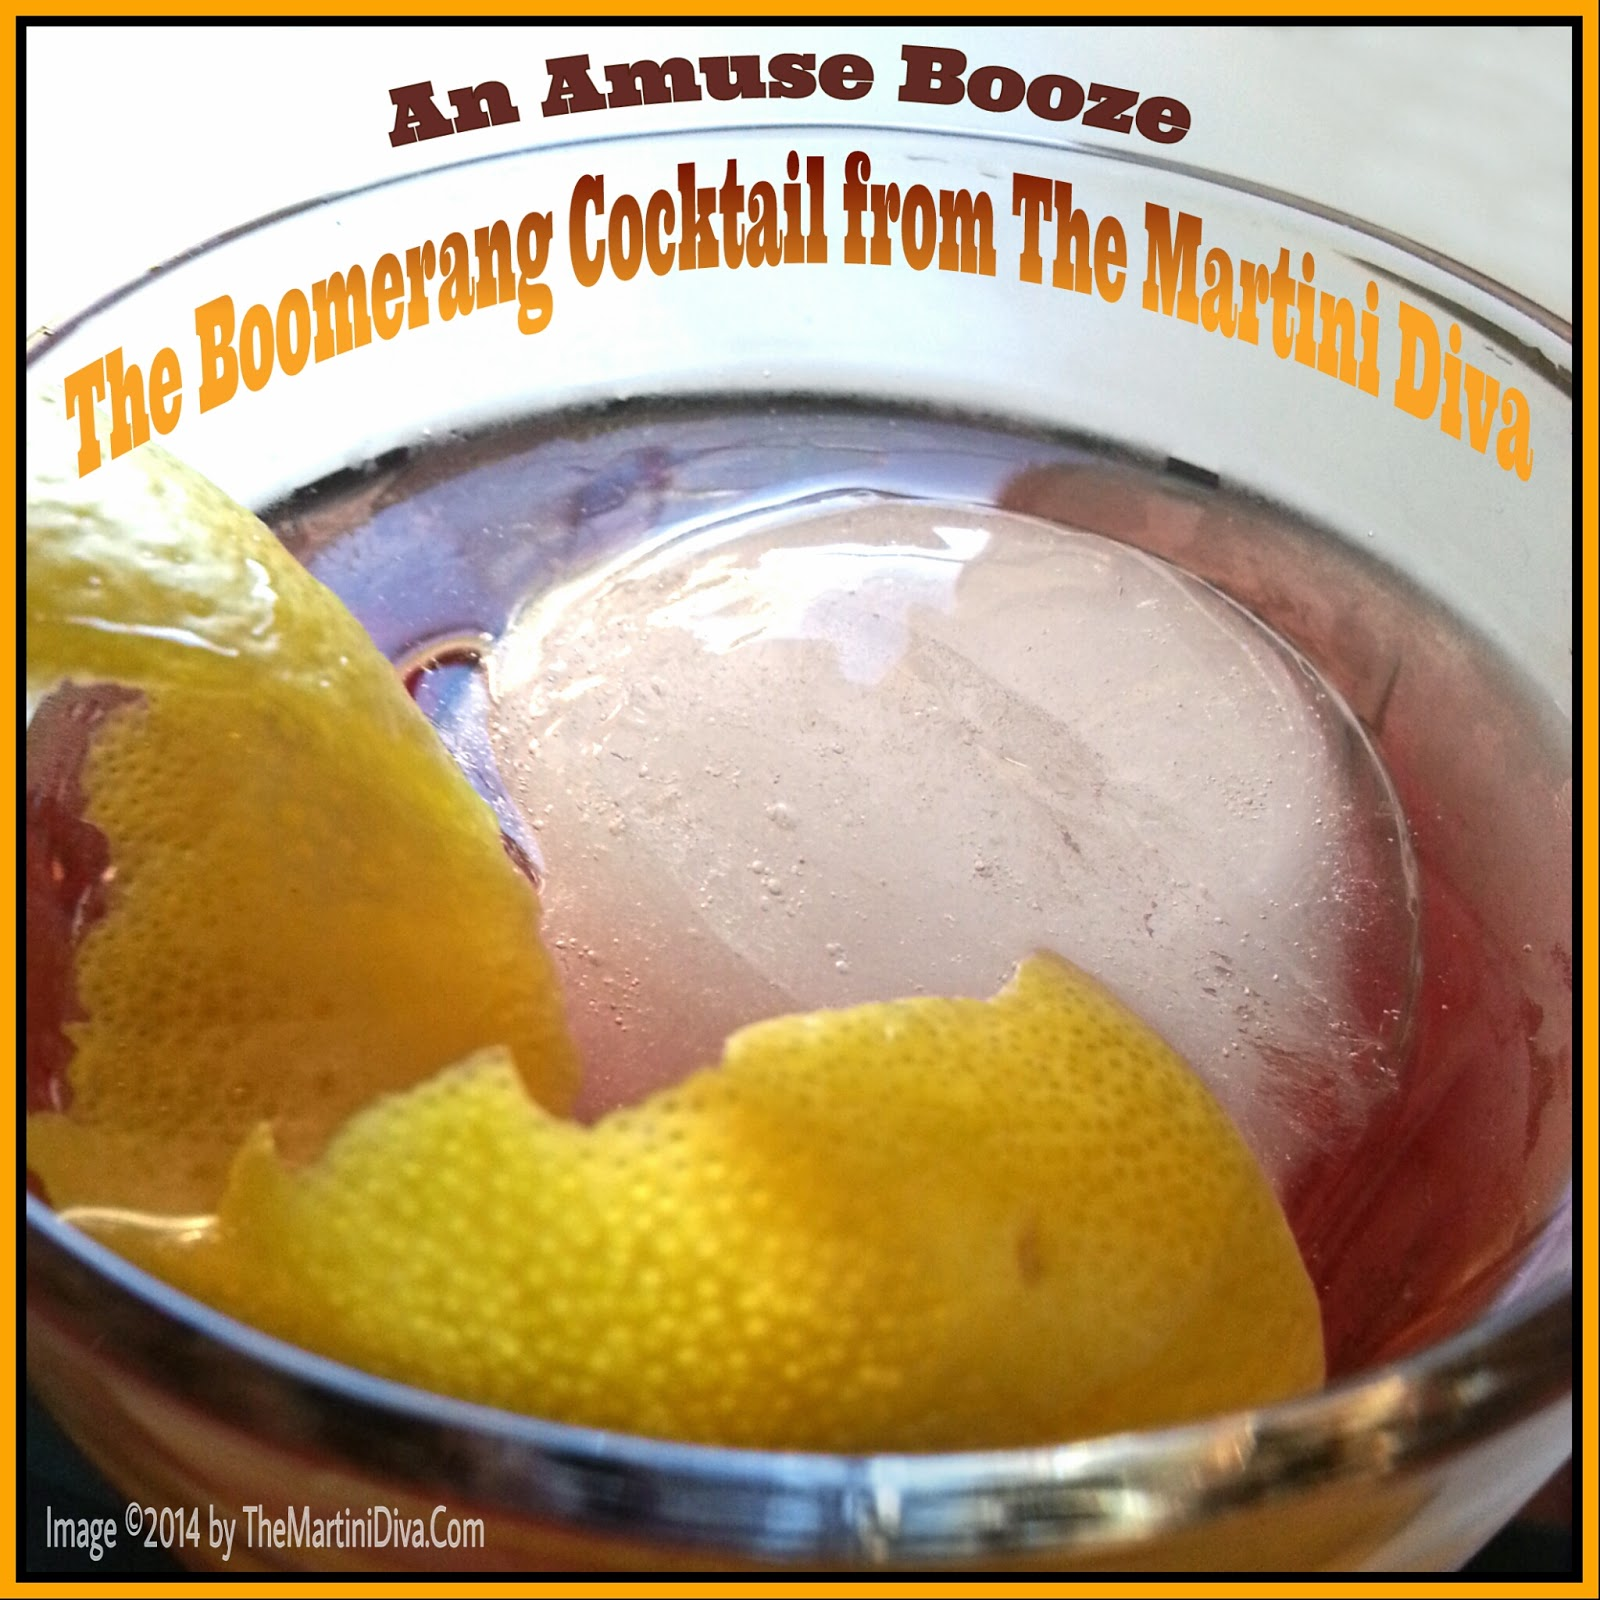 The Martini Diva What 39 S The Deal With Boomerang Cocktails